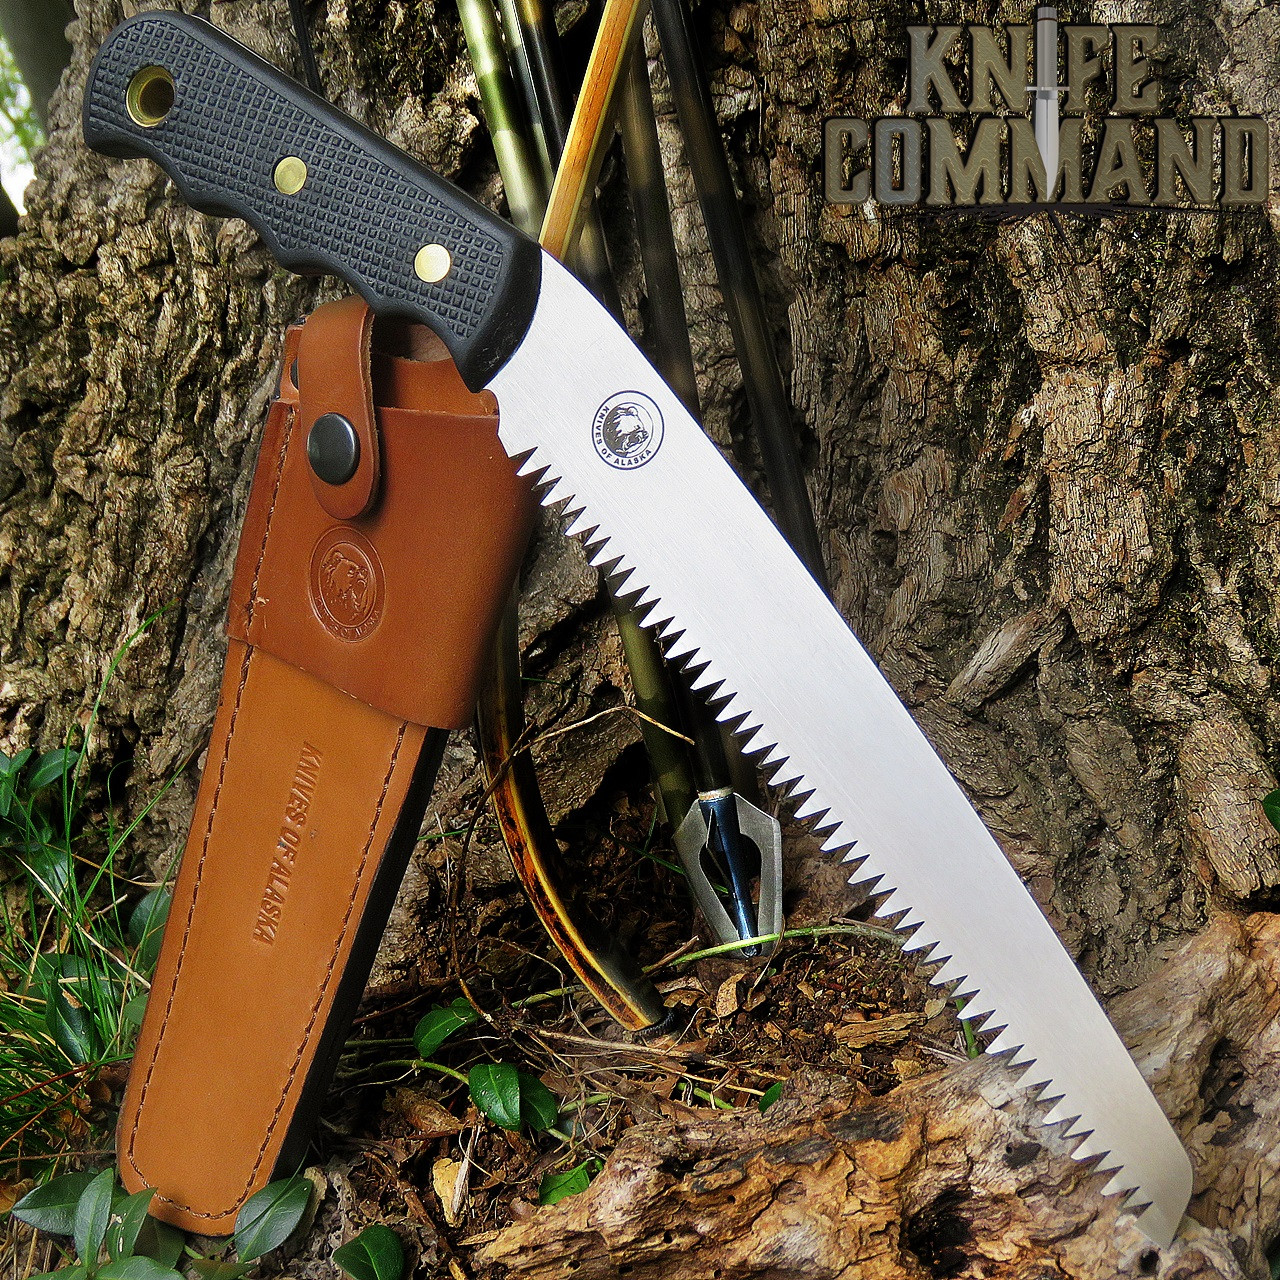 Knives of Alaska Wood Saw for Camping, Hunting, Tree Stands , Duck Blinds, etc. 00111FG